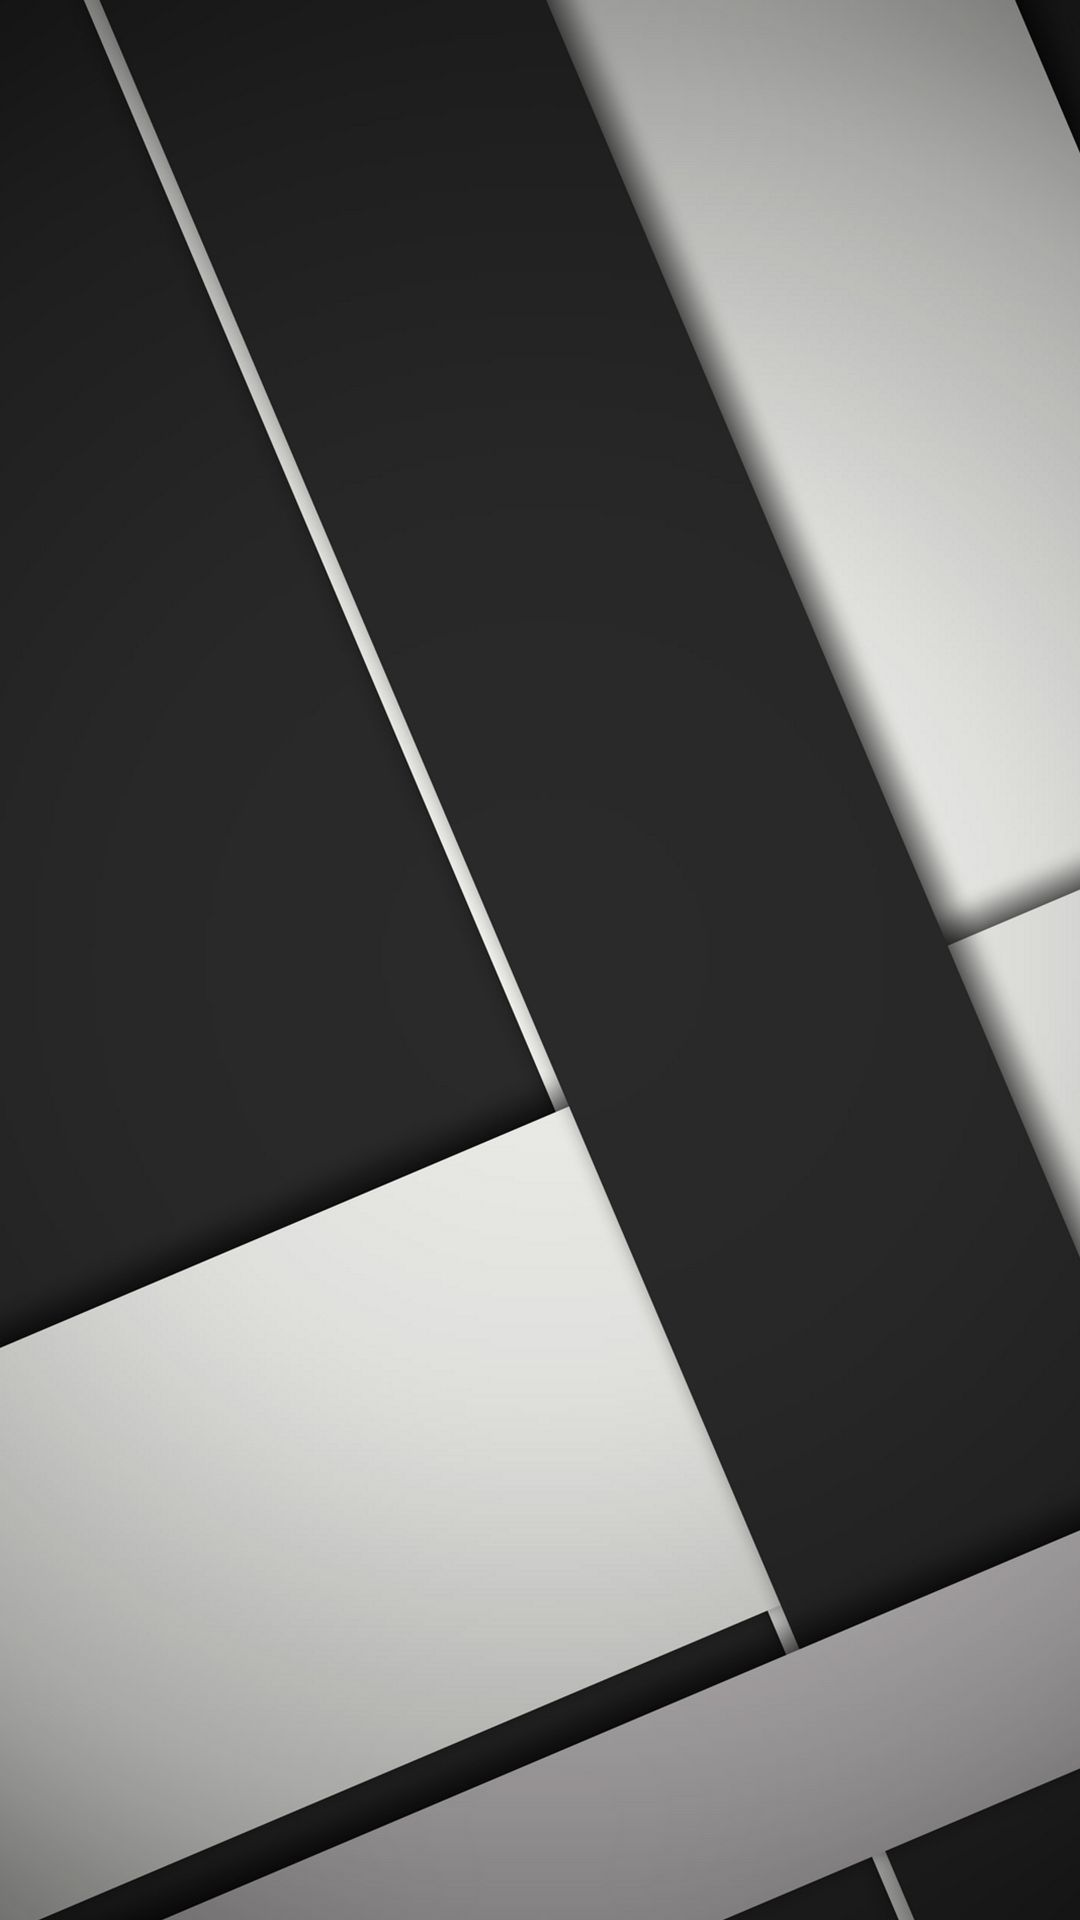 Modern Material Design Wallpapers And Abstract Background Images In High Resolution Material Design Cool Wallpapers For Phones Aztec Wallpaper